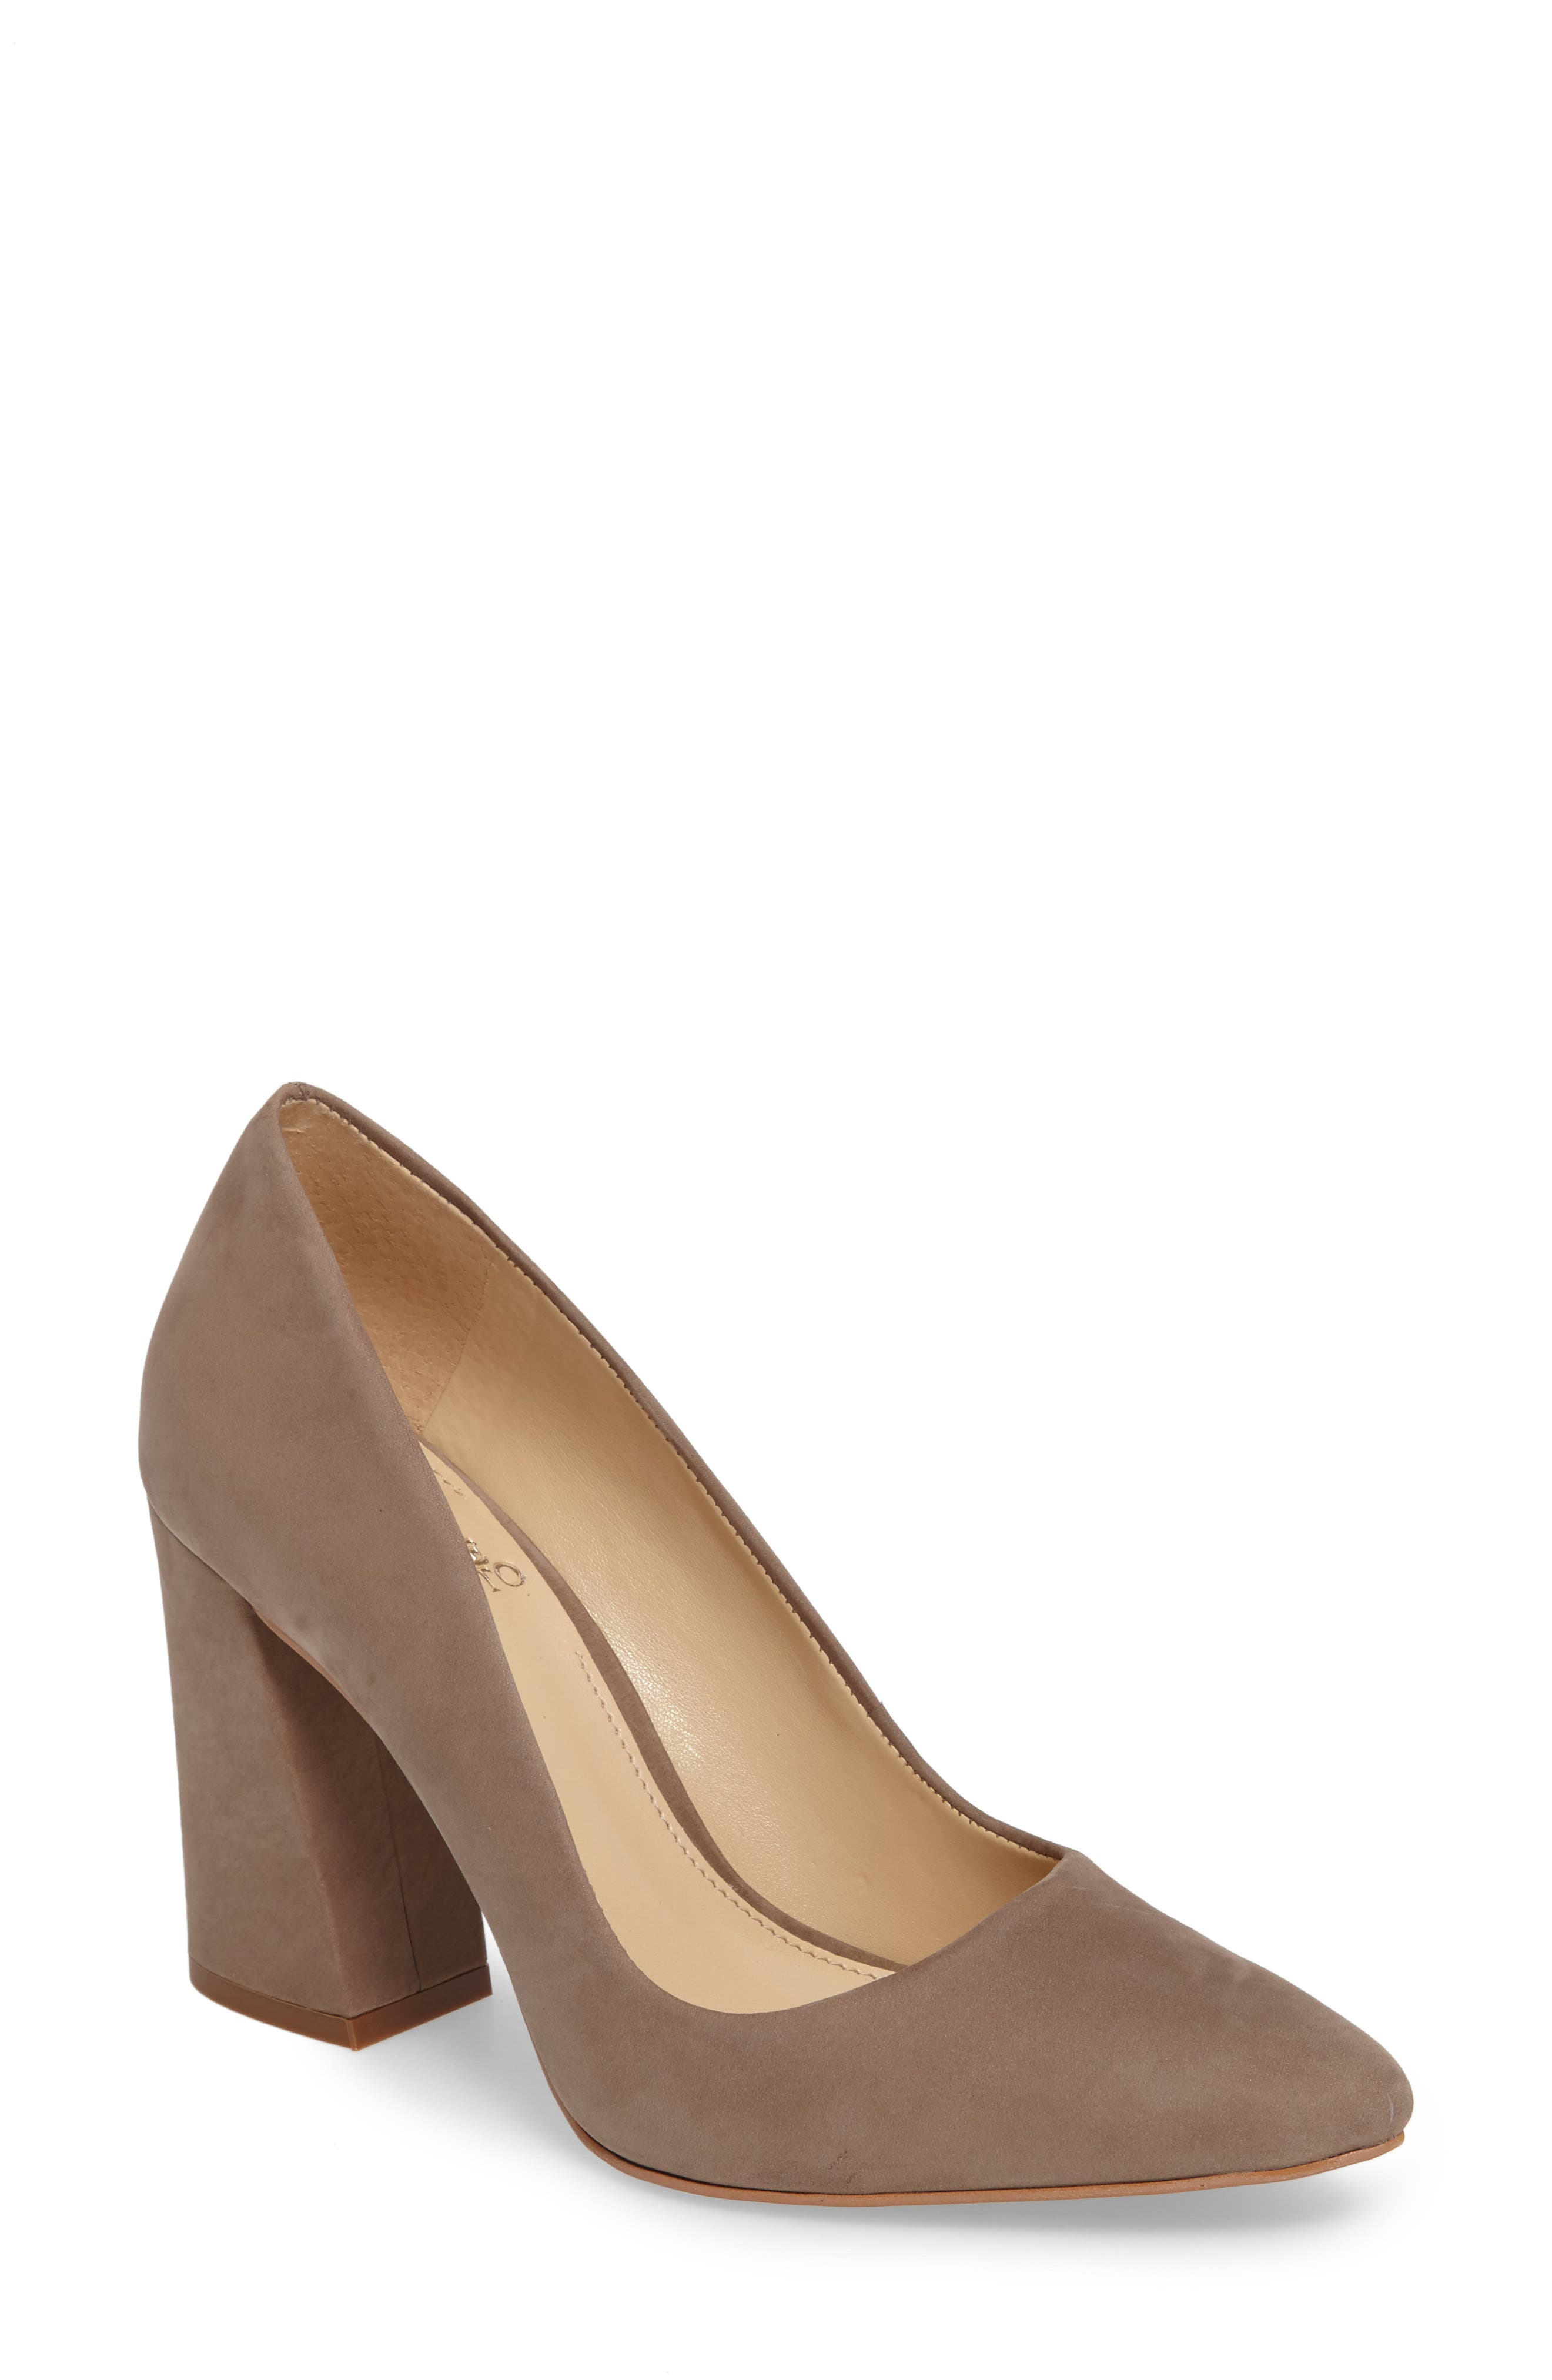 Talise Pointy Toe Pump,                             Main thumbnail 1, color,                             Smoke Show Nubuck Leather